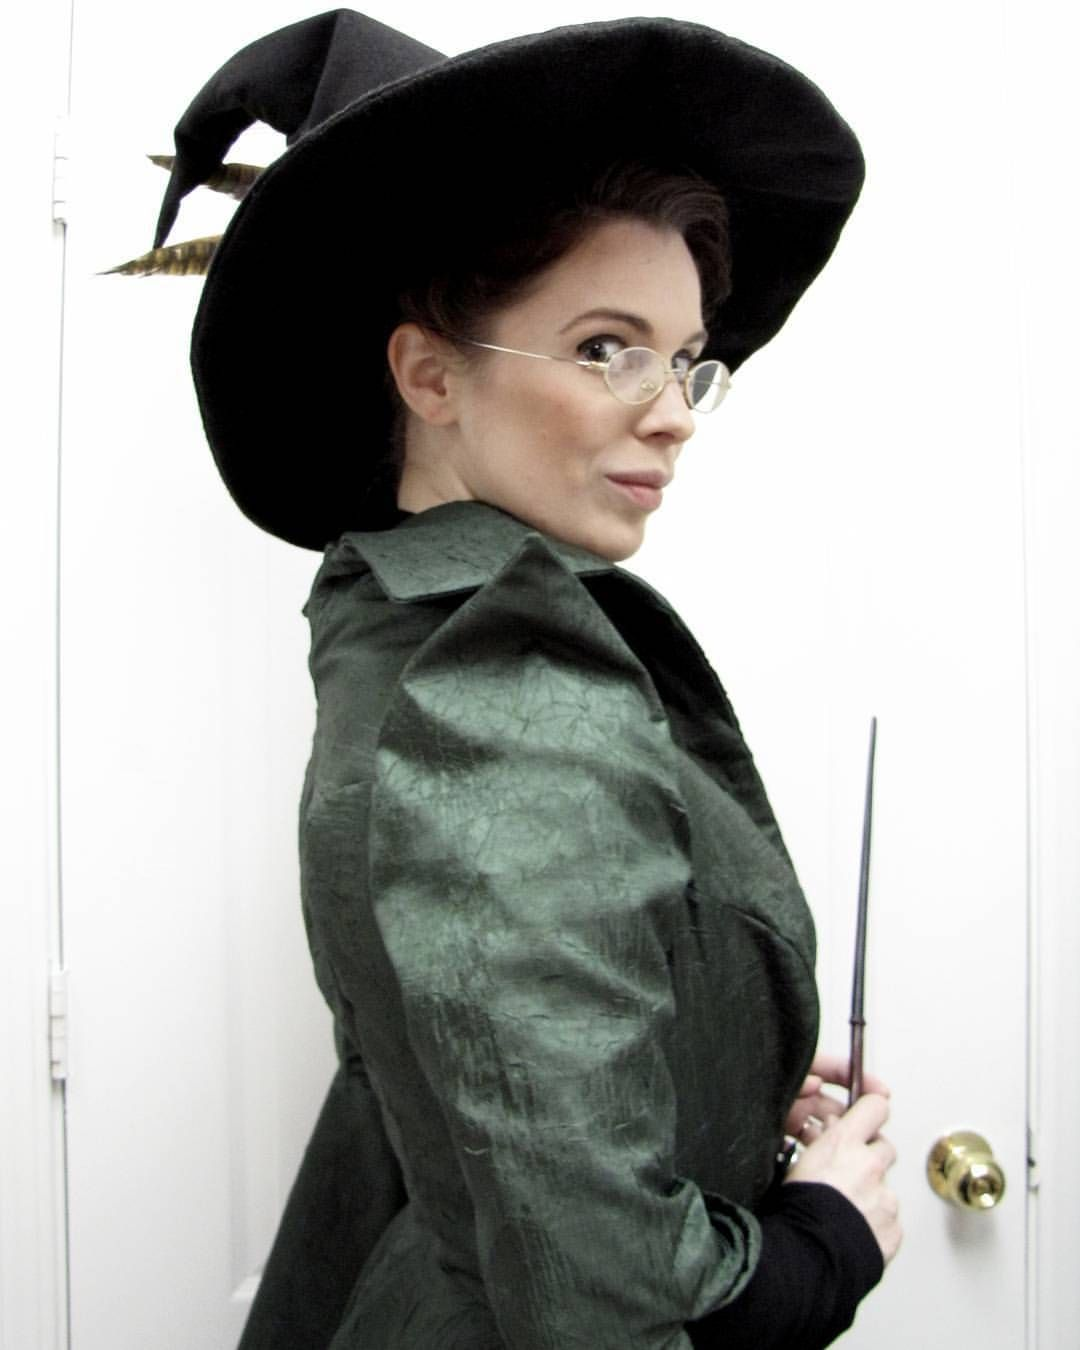 Young Professor Mcgonagall Is All Ready To Head Out To The Yule Ball At Conjurationcon Yule Ball Teacher Costumes Wizard Costume